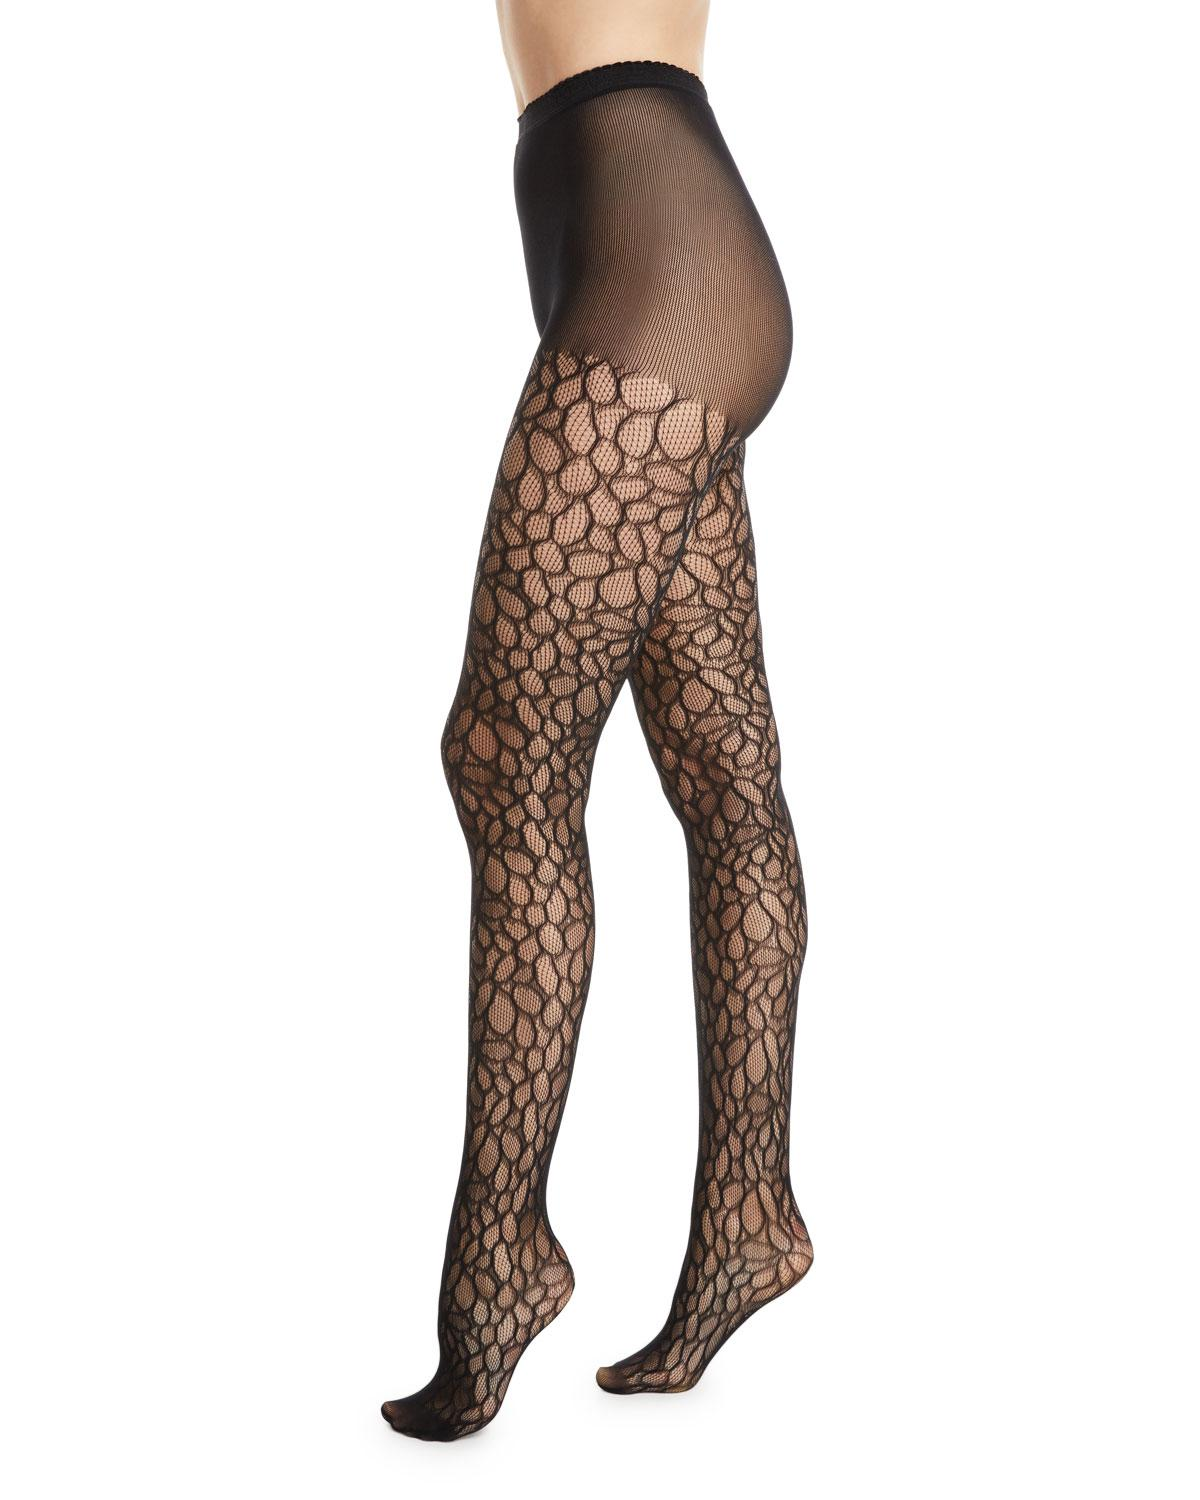 b84b250729f3e Natori Deco Lace Net Sheer Control-top Tights in Black - Lyst